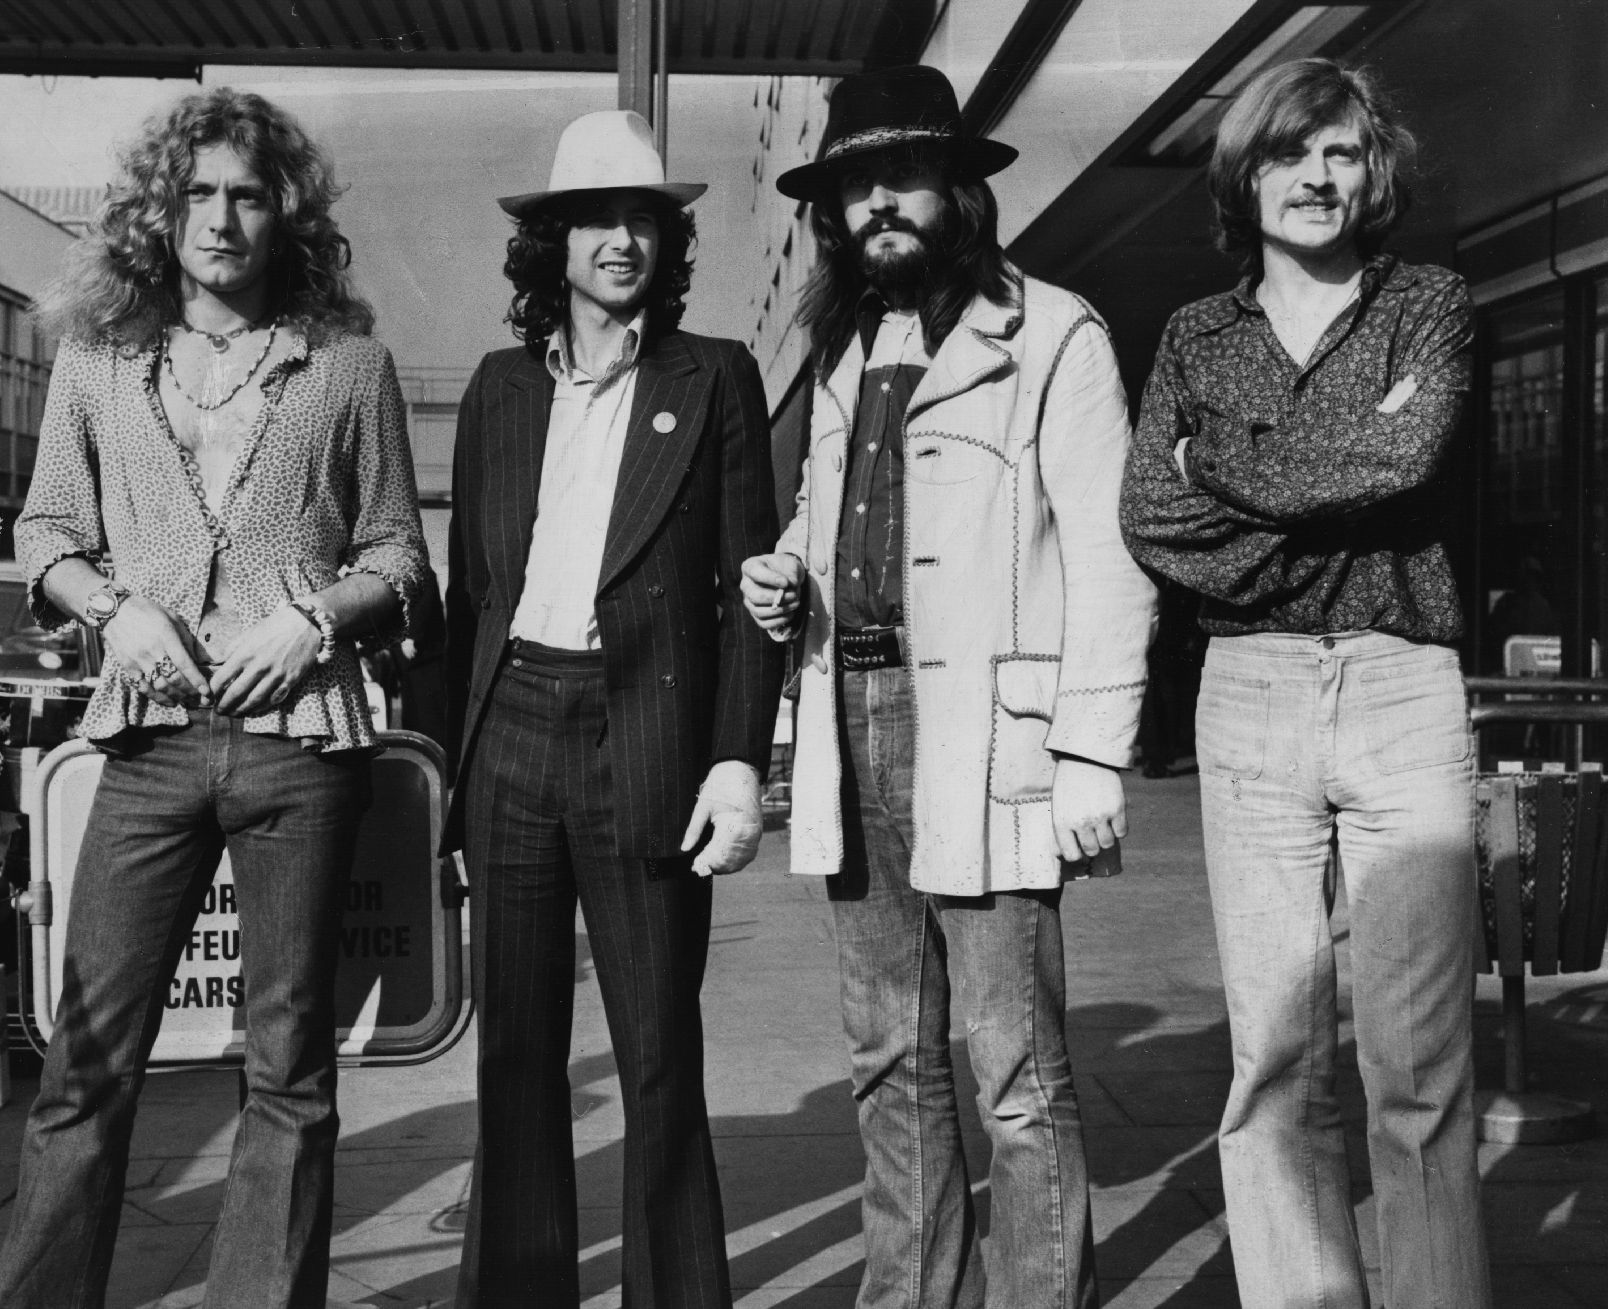 led zeppelin the british rock band